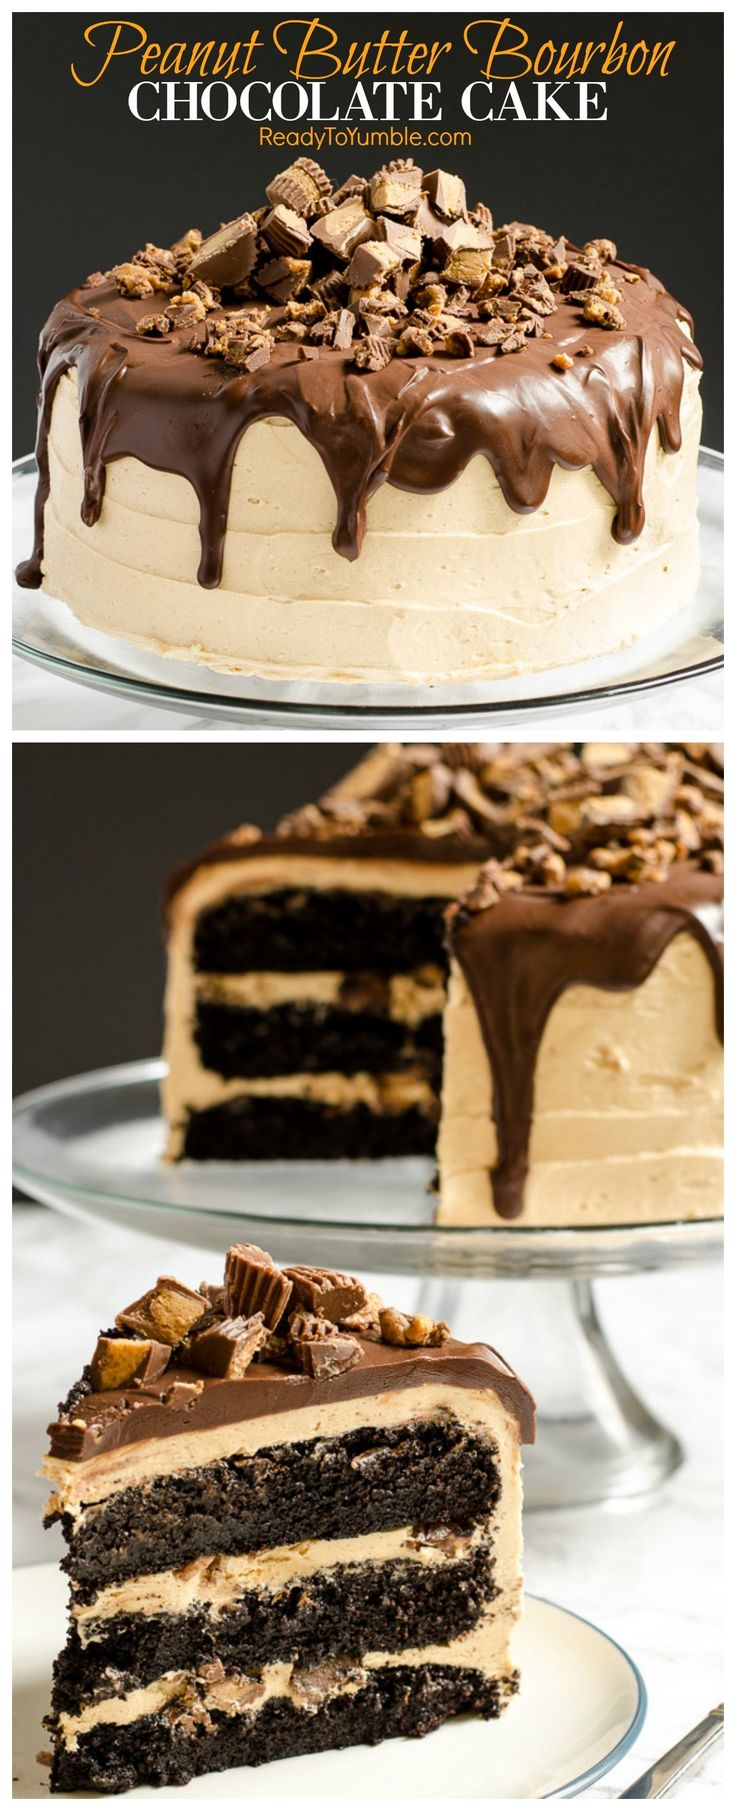 Peanut Butter Bourbon Chocolate  Cake with a peanut butter bourbon frosting. Top with ganache and peanut butter cups.